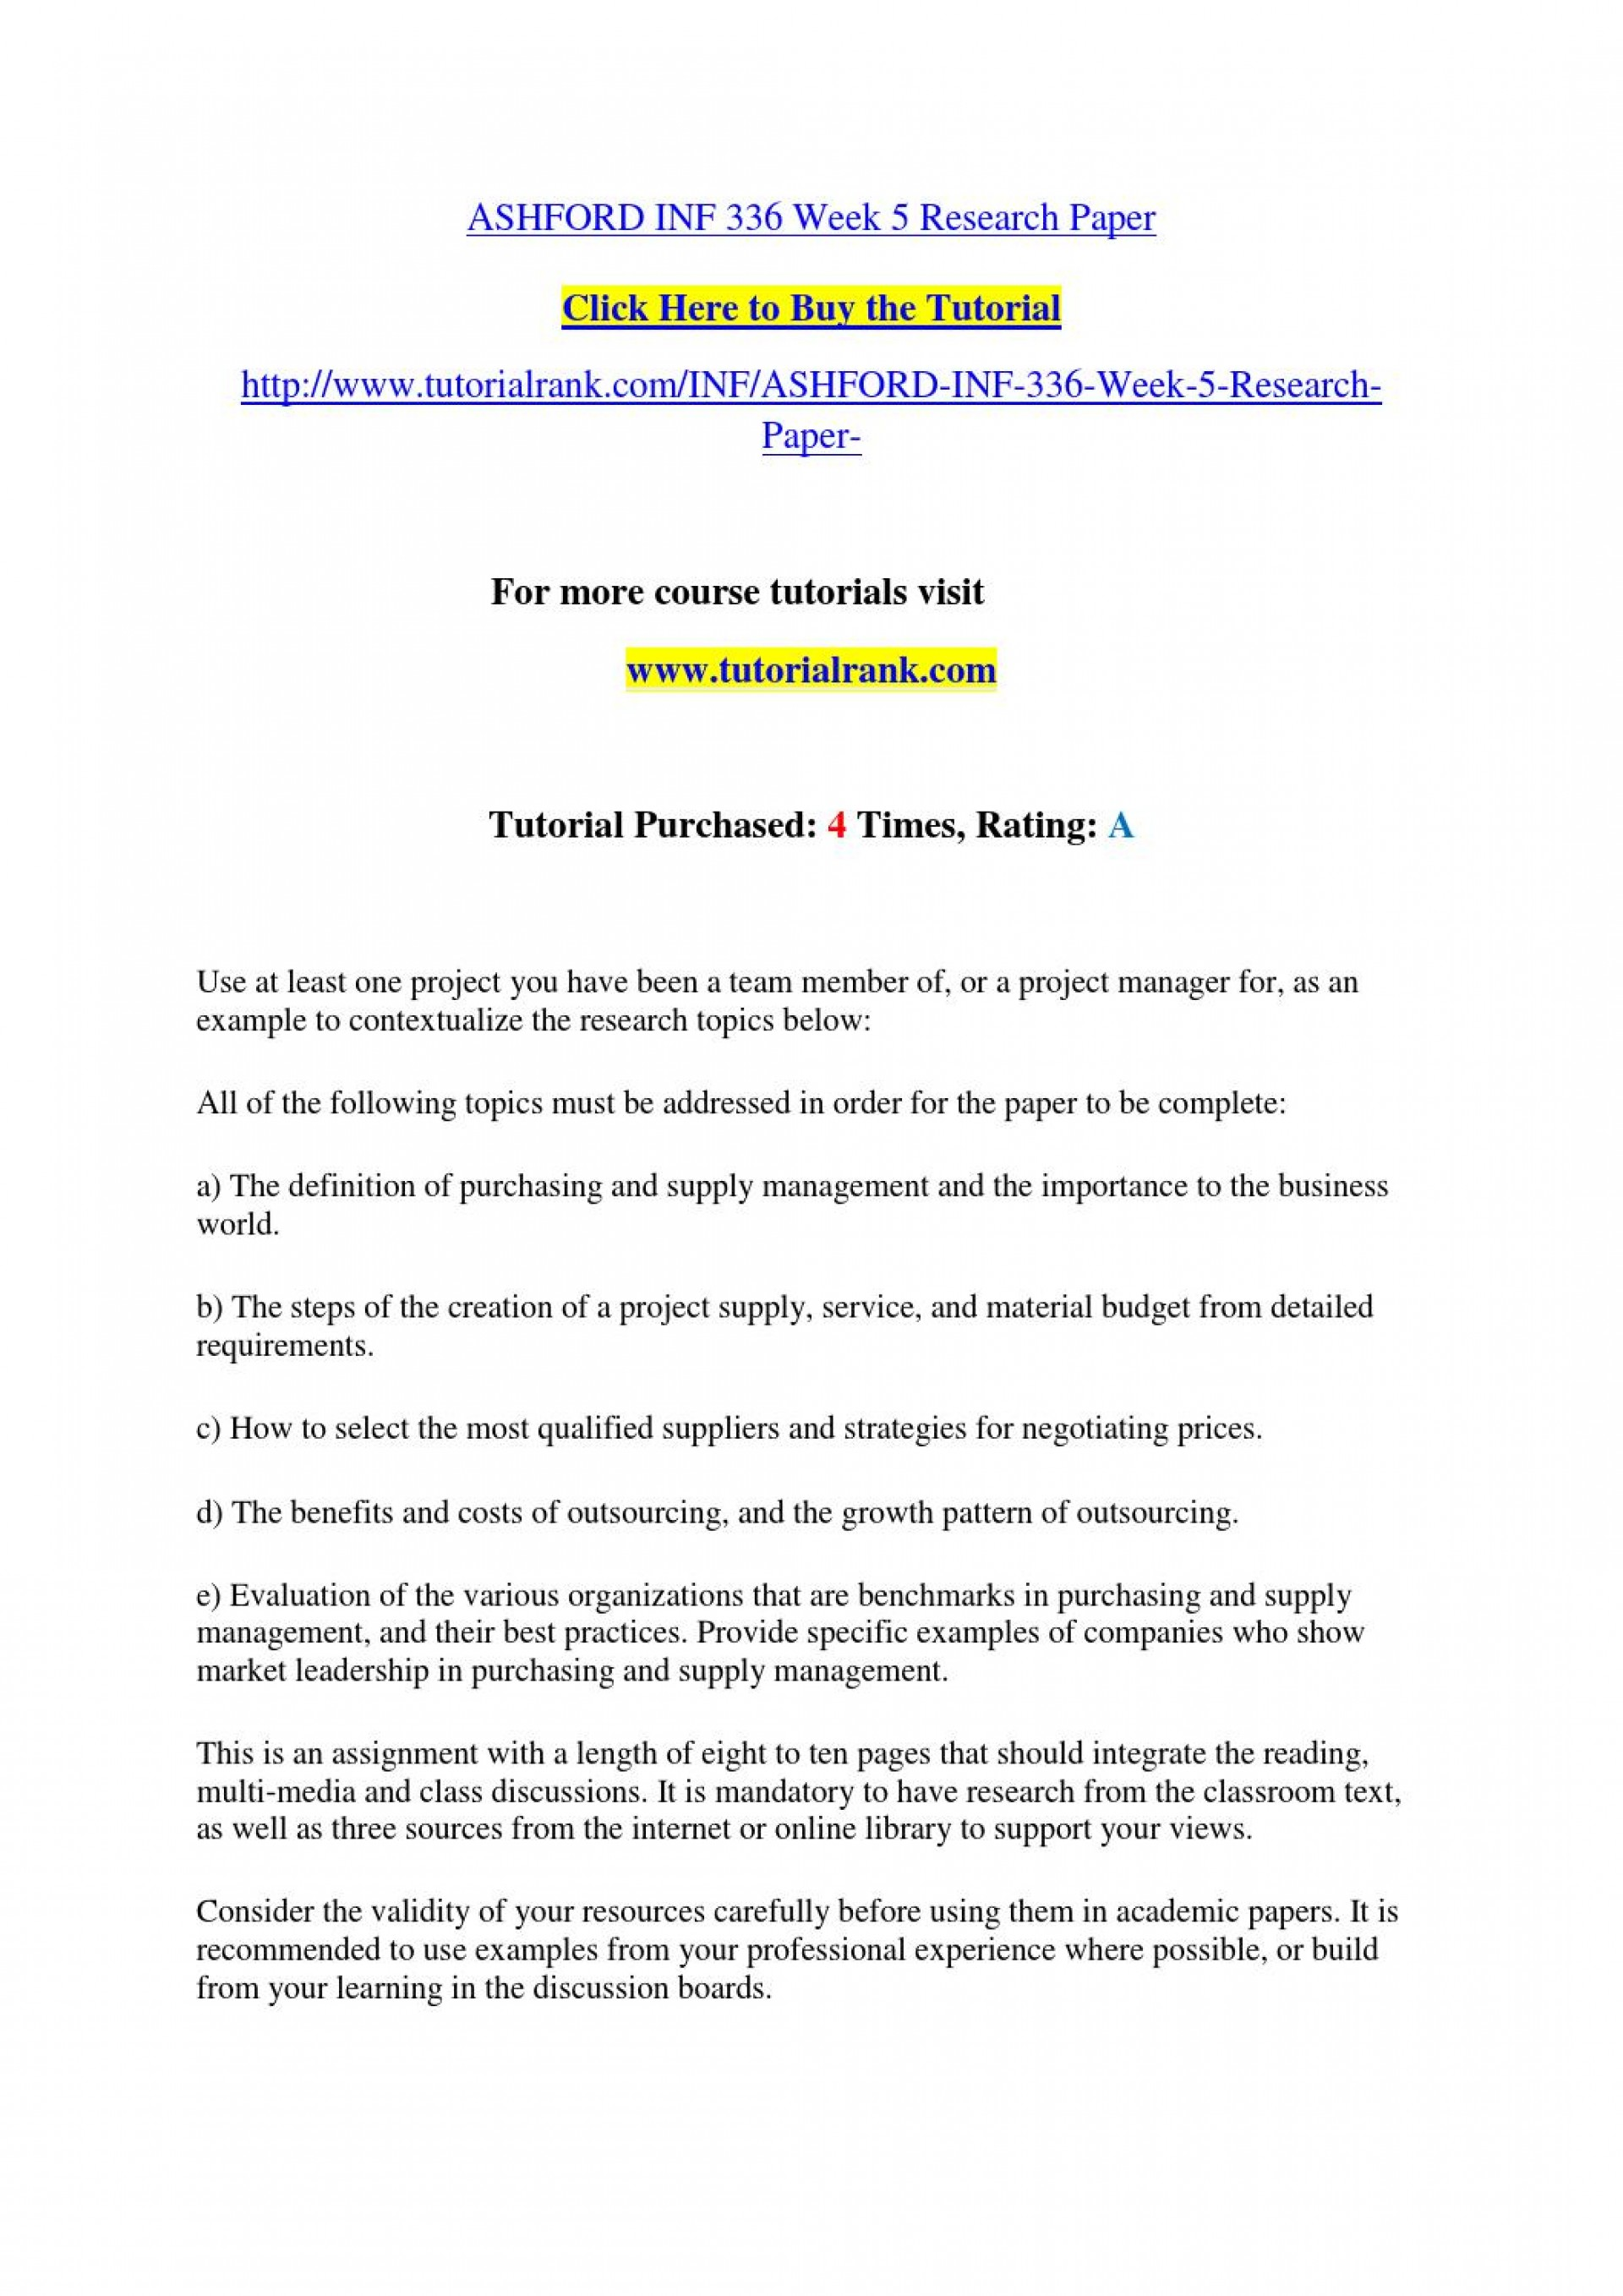 018 Research Paper Business Management Topics For Page 1 Unusual Pdf Techniques 1920